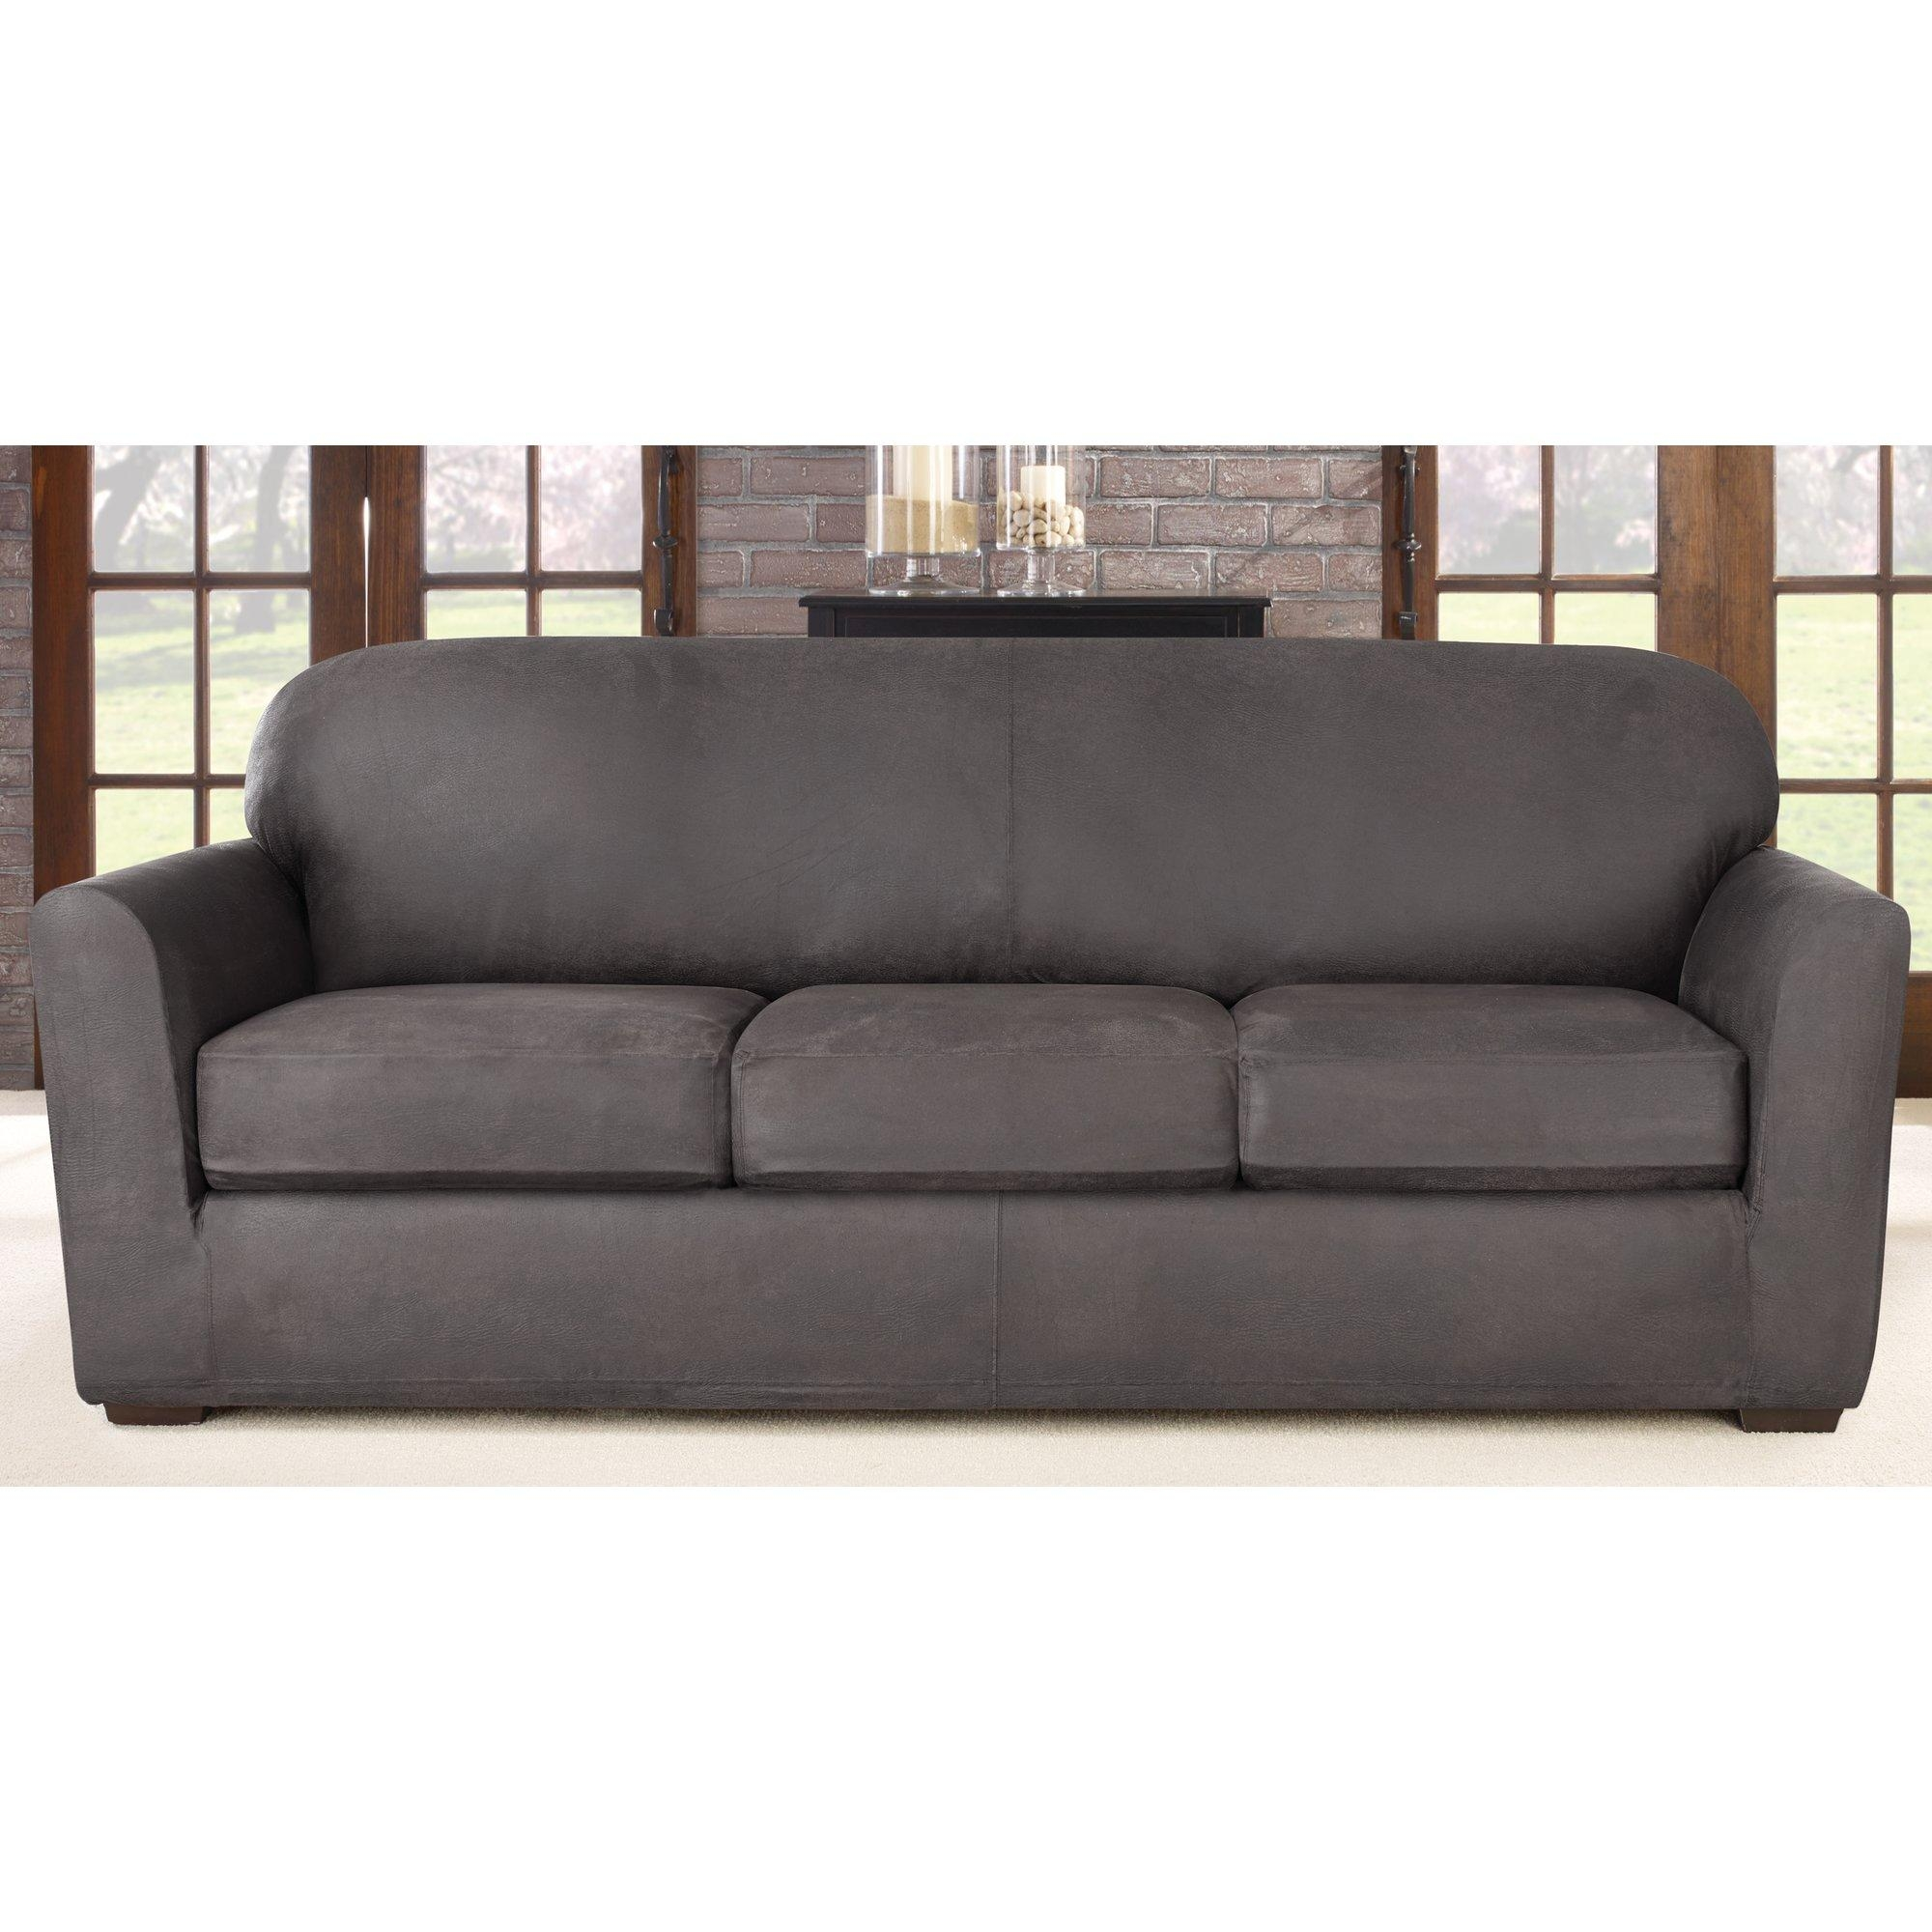 19 Best Collection Of Camelback Sofa Slipcovers Sofa Ideas